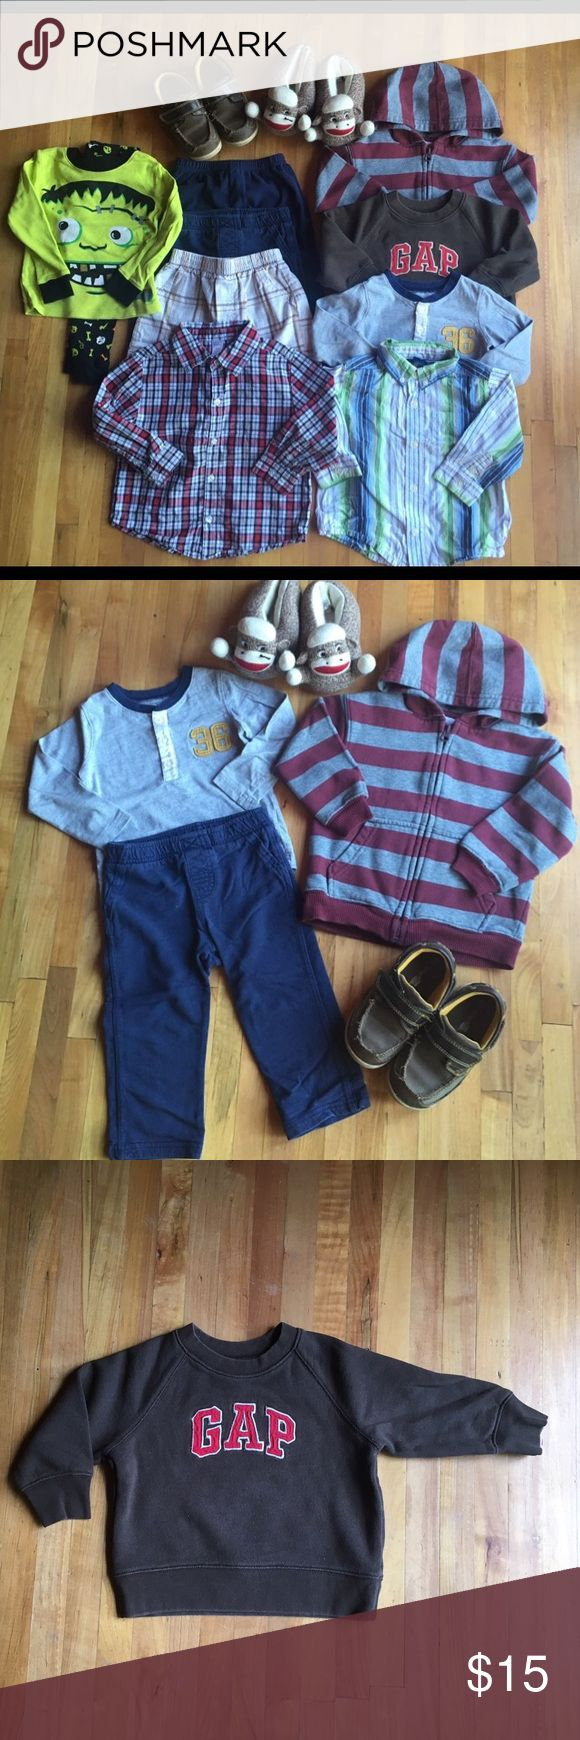 2T Boy's 12 Items Bundle Mix Brands 2T Boy's 12 Items.All still in good condition.No stains,rips,holes.Came from a smoke and pet free home.  1.Carter's Matching set grey long sleeve and navy pants 24 Months 2.Wonderkids zip up hoodie 2T 3.Baby Gap sweatshirt 18-24 months 4.Carter's navy blue fleece pants 24 months 5.Oshkosh shirt 2T 6.George shirt 3T run small like 2T 7.Koala Kids short pants 48 months 8.Joe Boxer Pjs set has stains on the long sleeve  9.Socks Monkey sleeper size S…